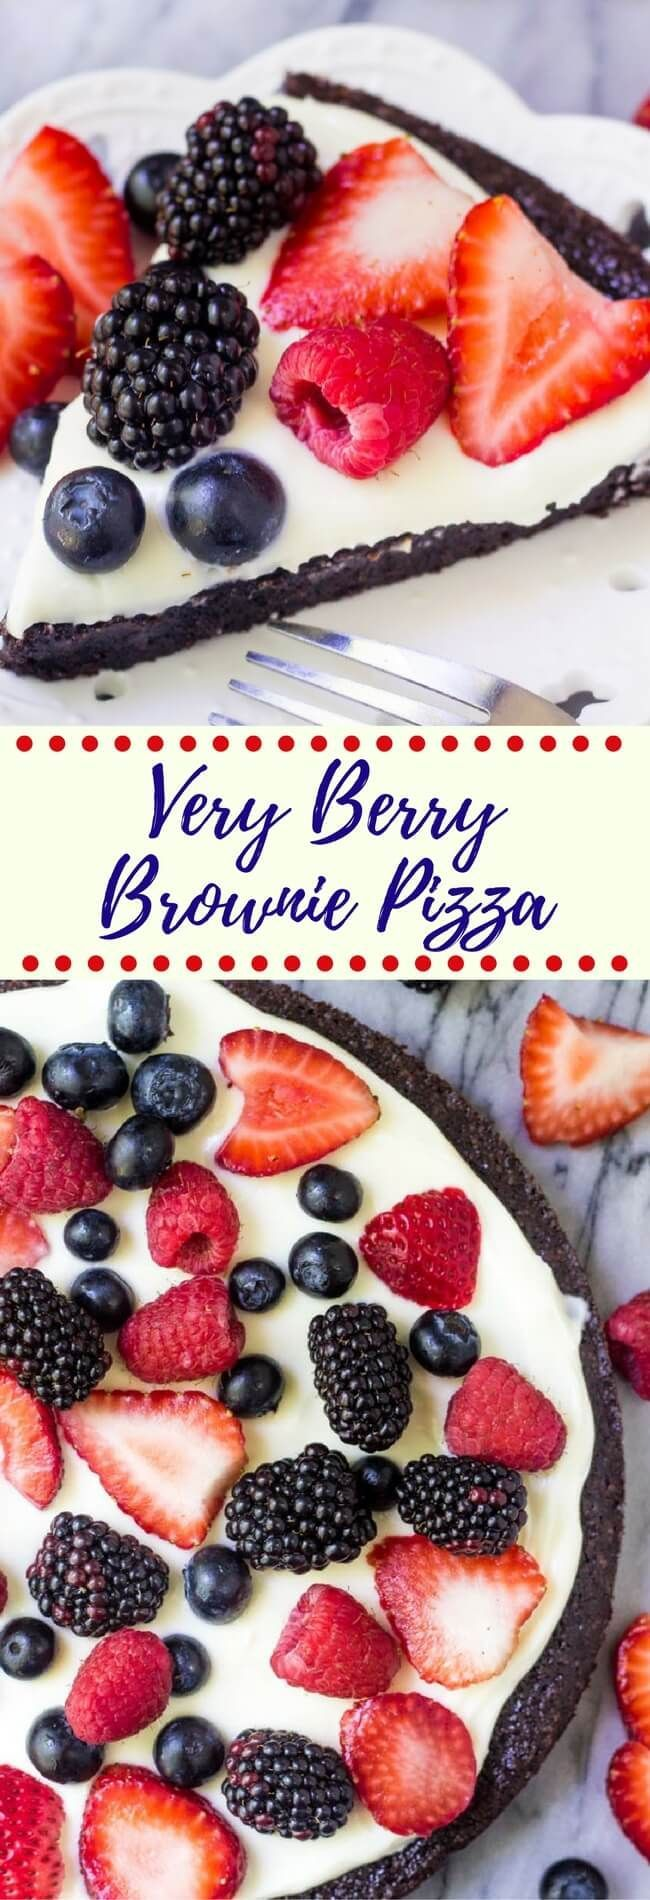 This Very Berry Brownie Pizza starts with a fudgy, one bowl brownie. Then it's smothered in a sweet cream cheese topping and decorated with fresh berries. If you love fruit pizza & chocolate - then you NEED to try this!